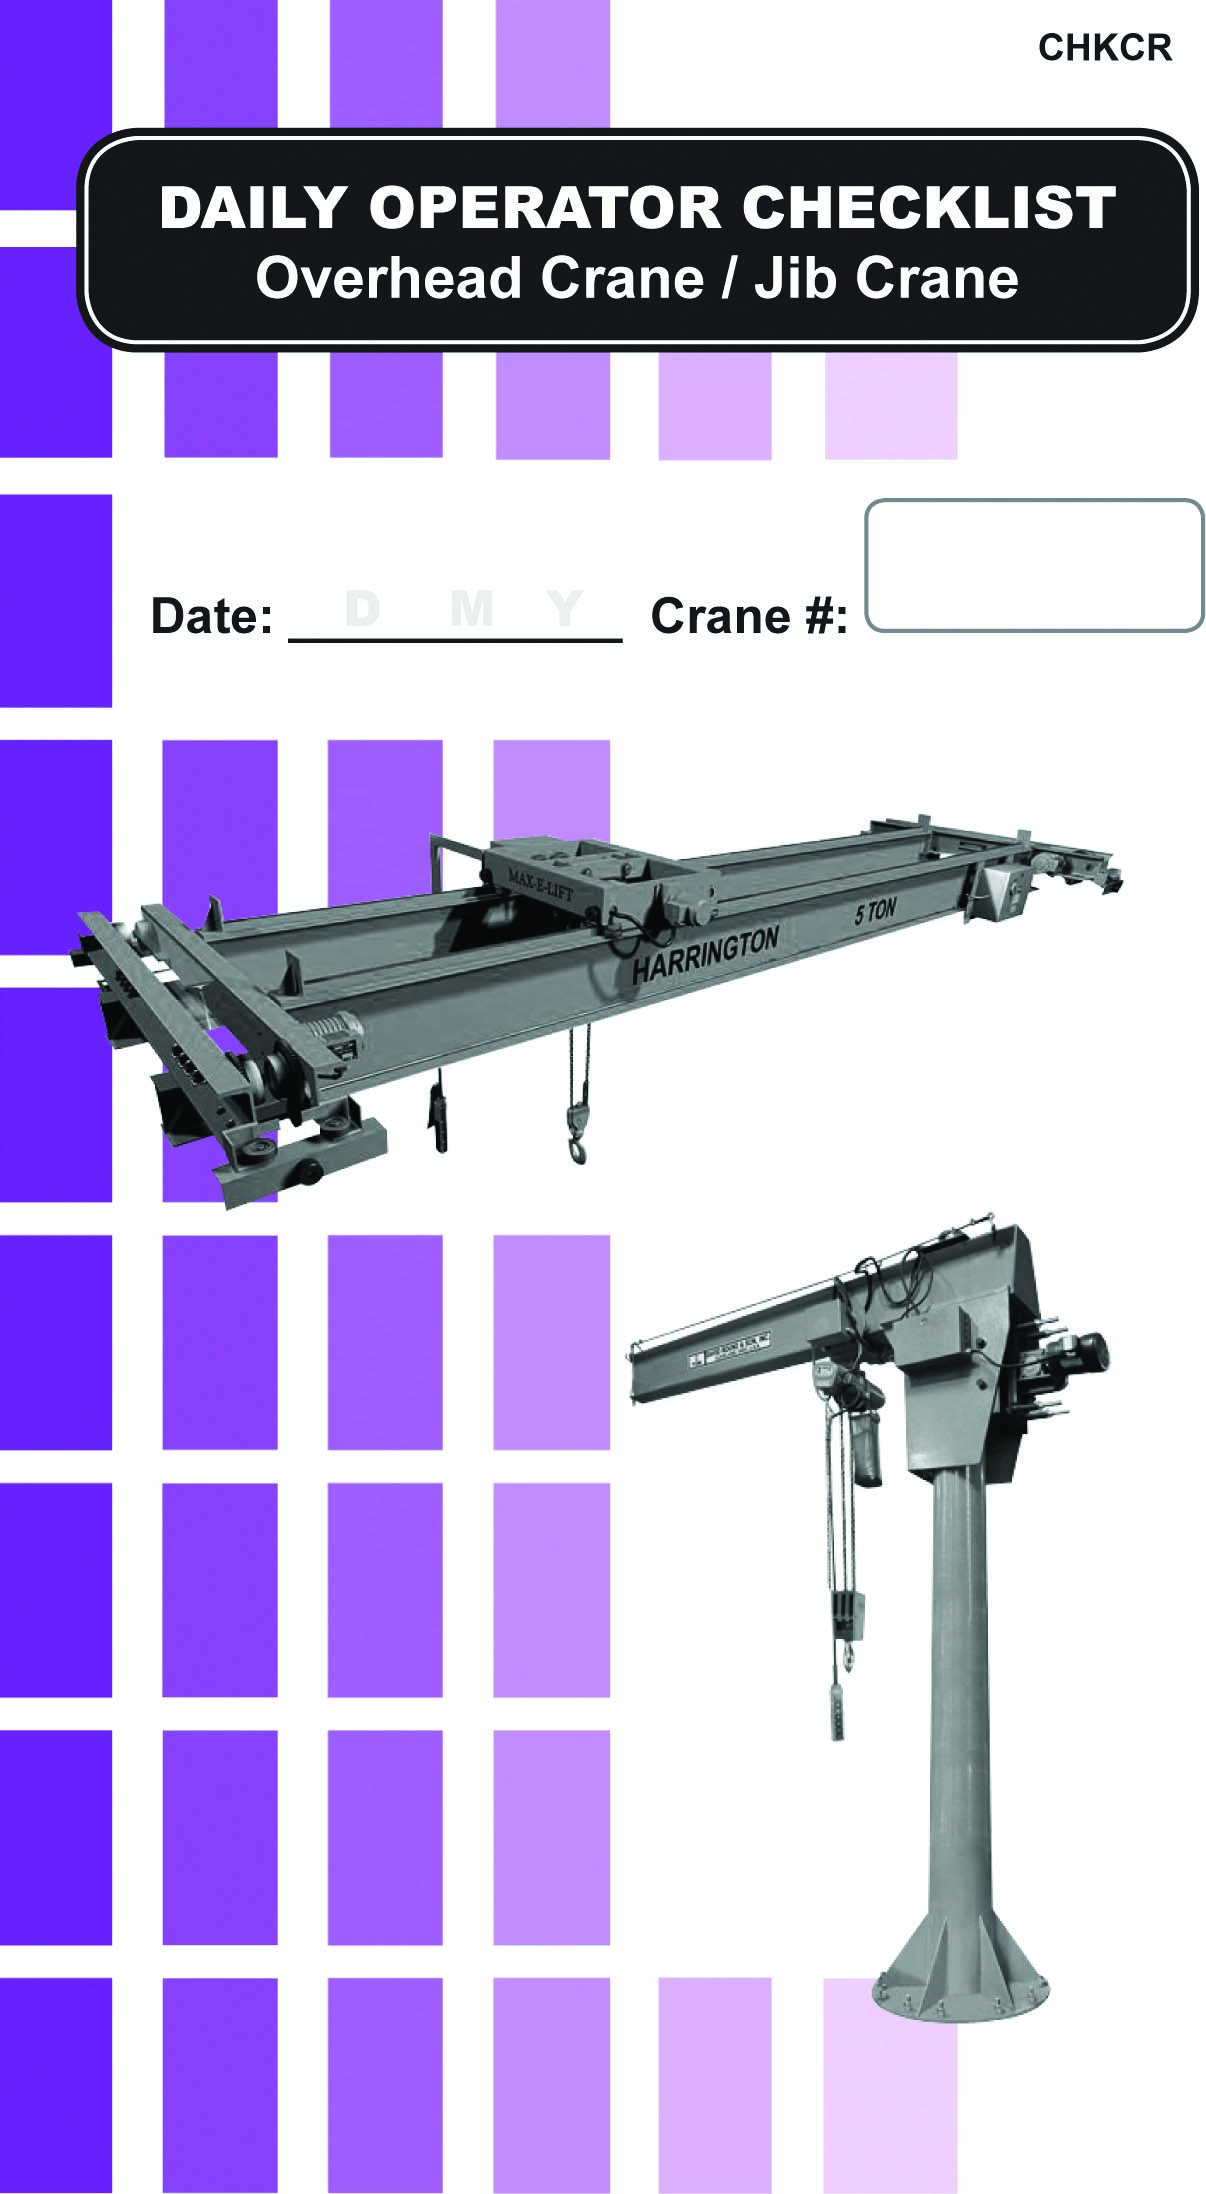 Jib Crane Maintenance Checklist : Overhead crane jib daily checklist caddy first quality forklift training